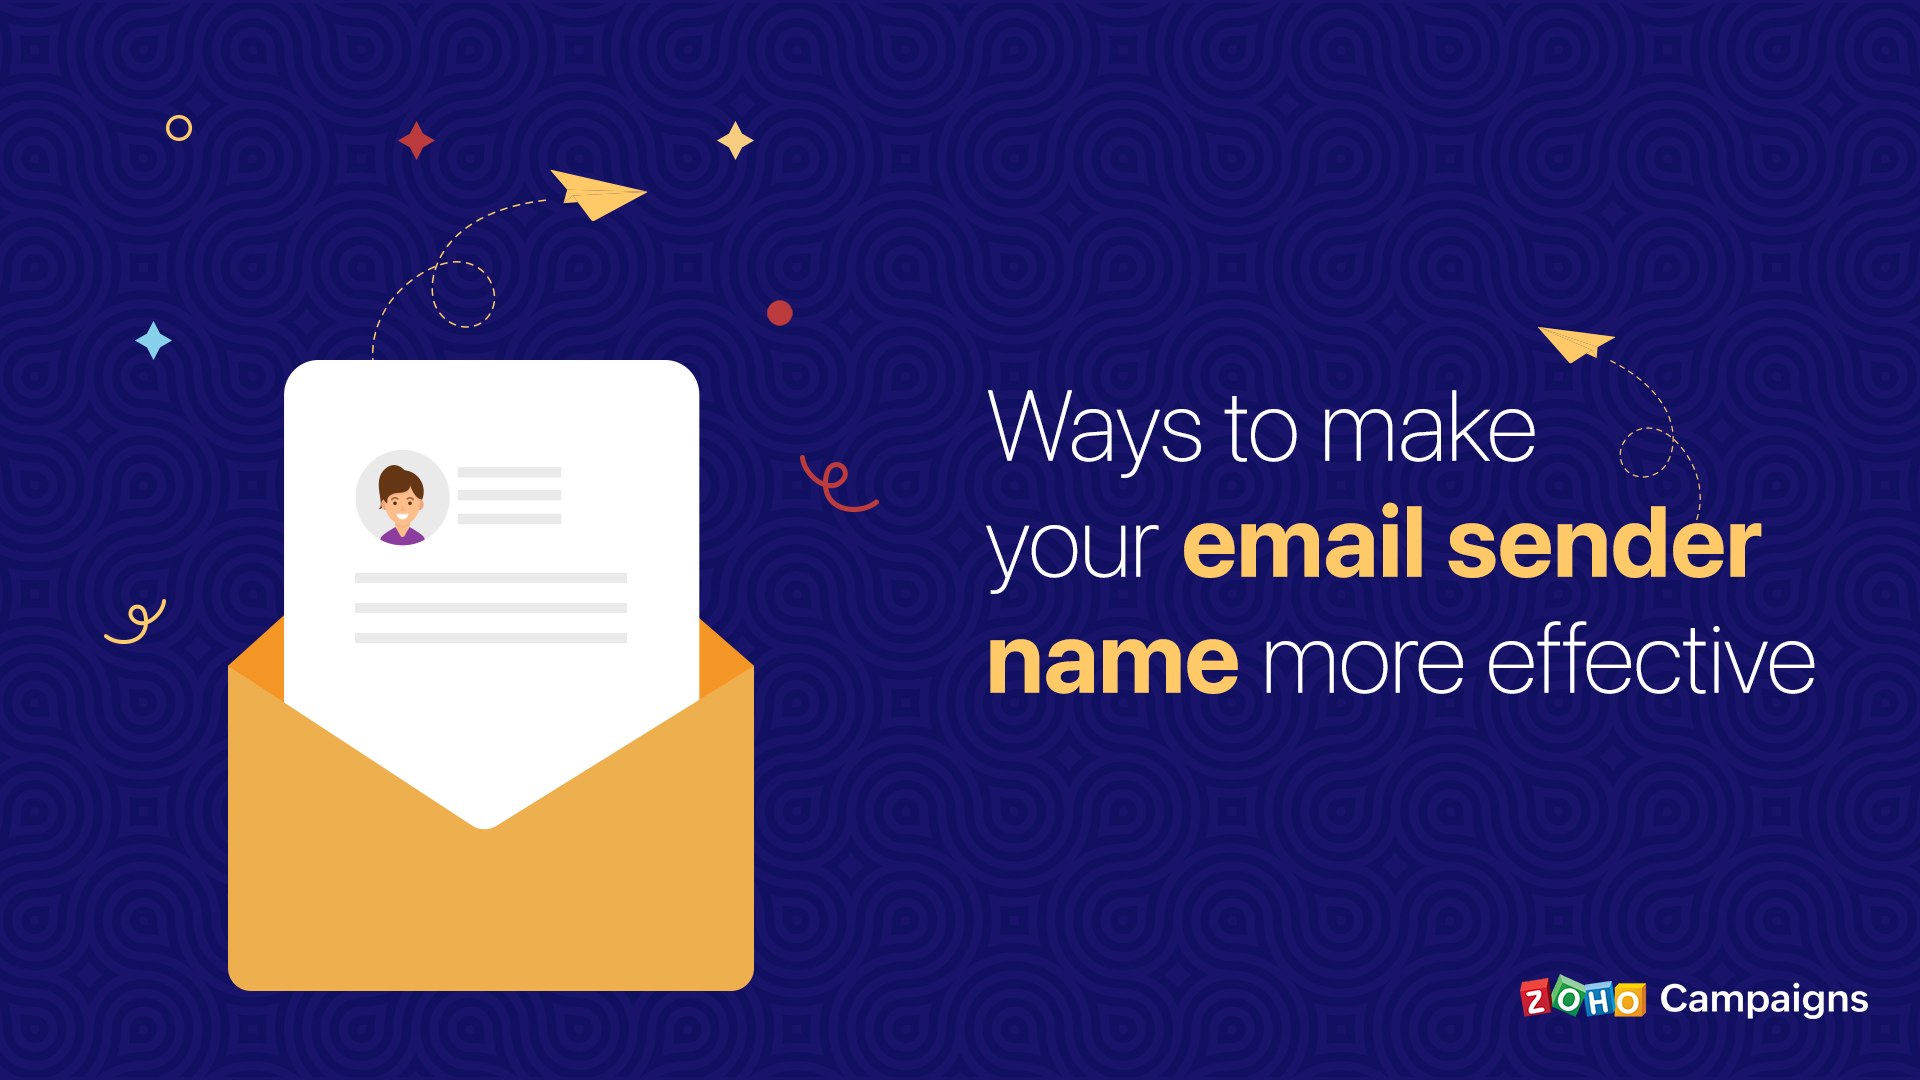 Ways to make your email sender name more effective